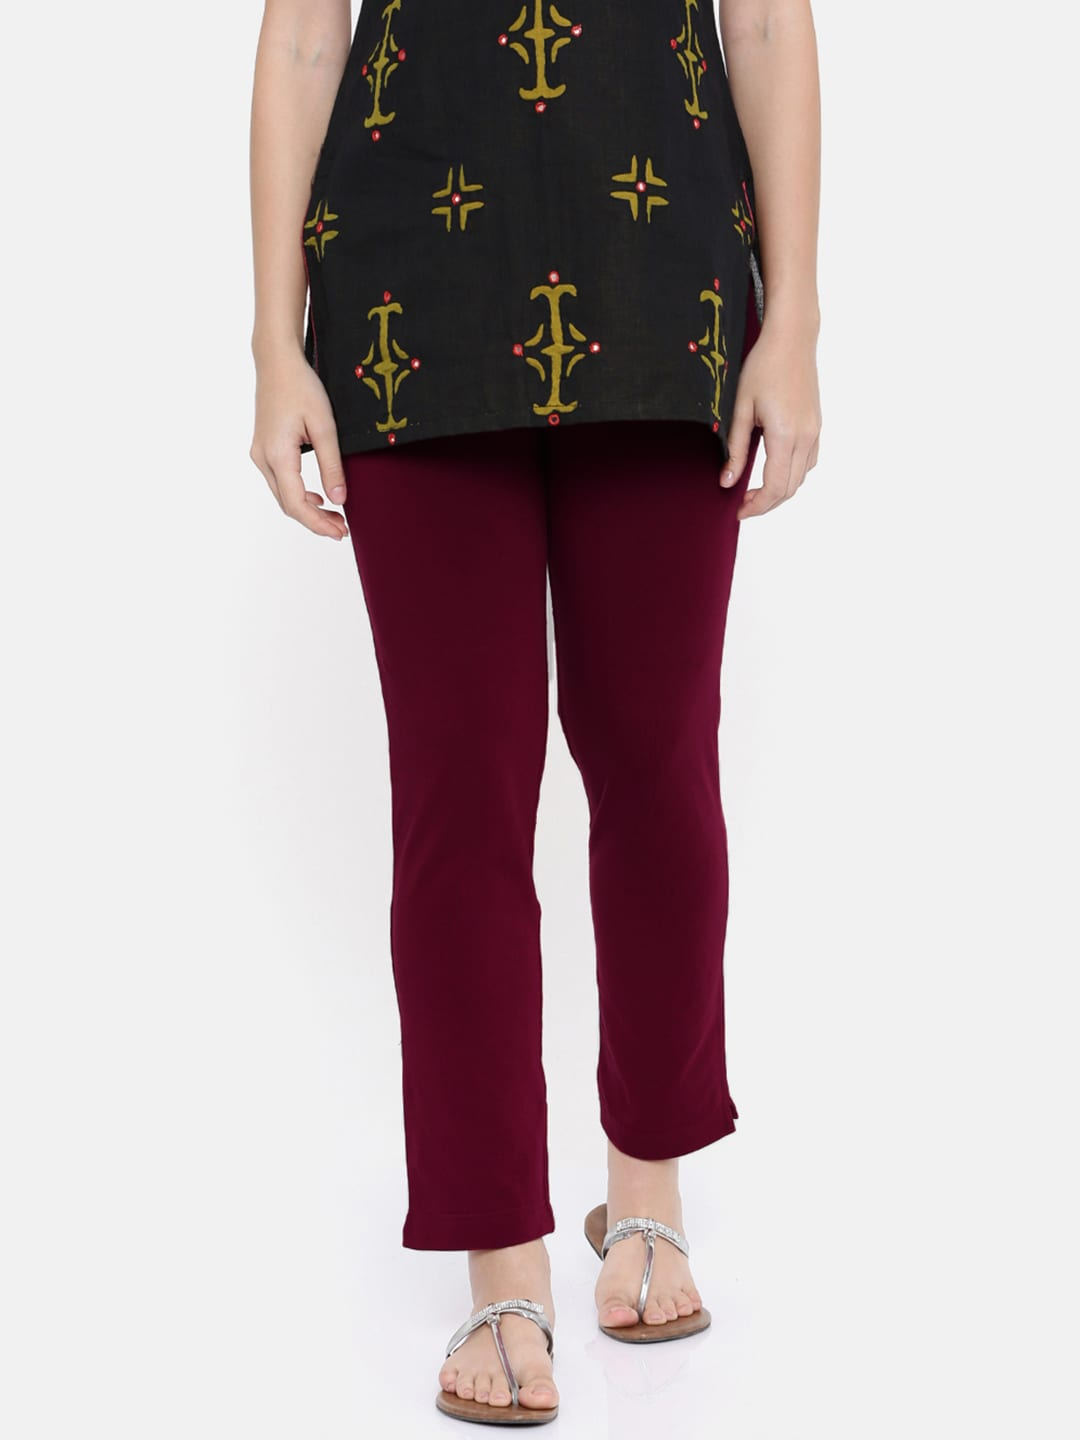 a6cf755f51 What Color Shirt Goes With Maroon Pants | Saddha